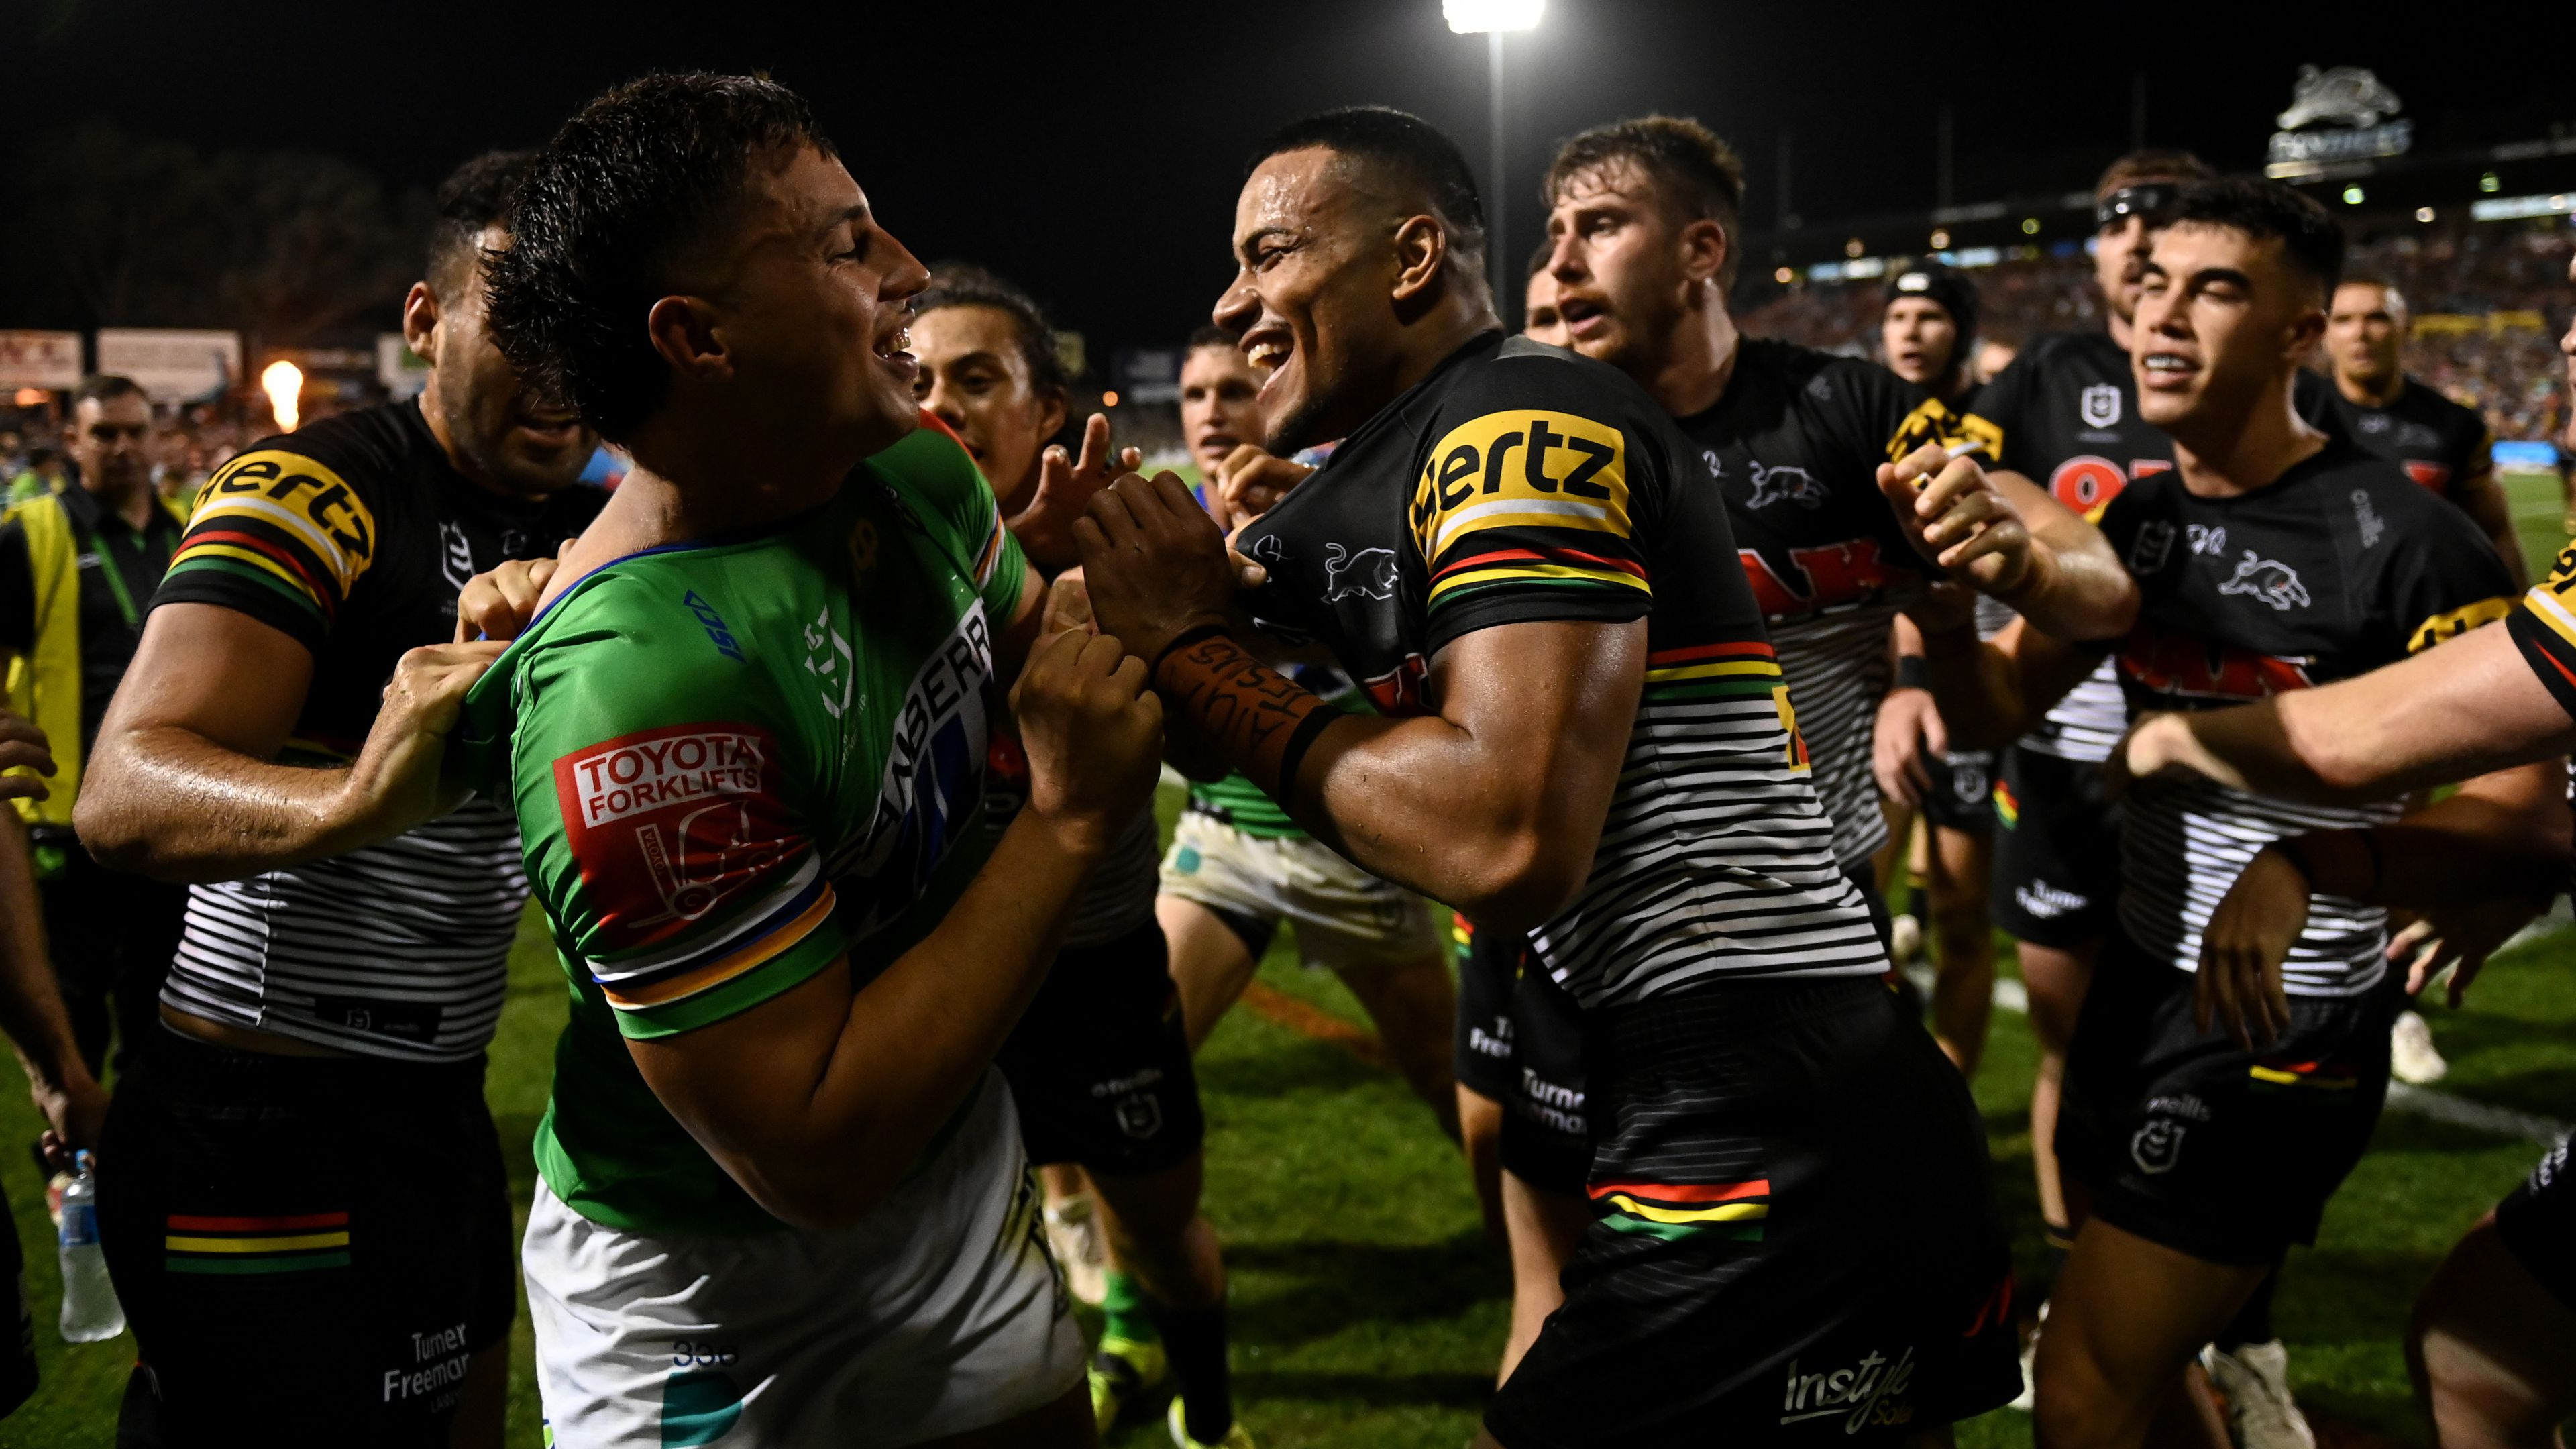 Stephen Crichton hit with contrary conduct charge after fiery showdown with Canberra Raiders